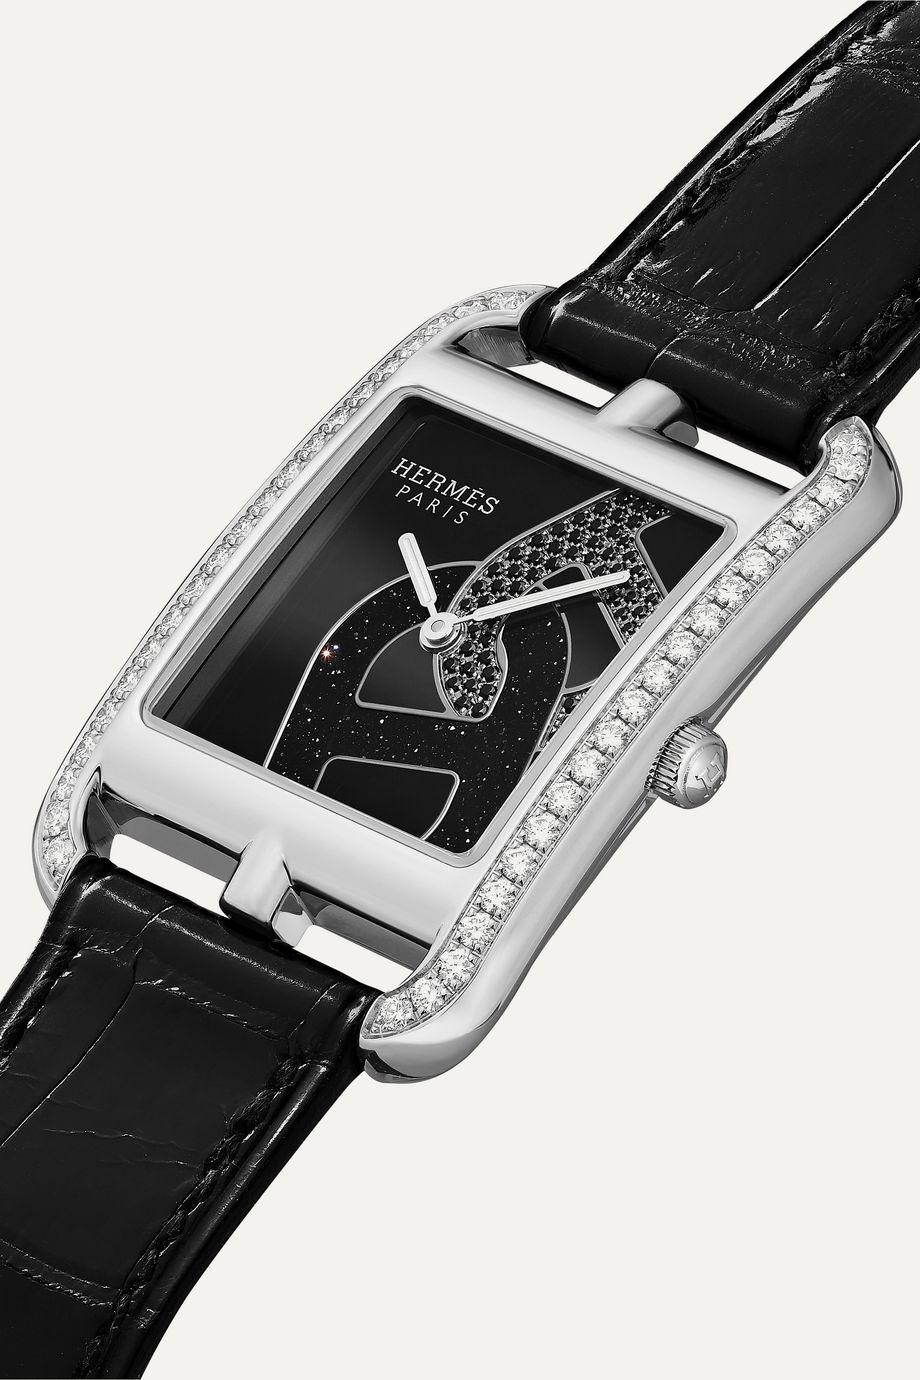 Hermès Timepieces Cape Cod 29mm medium stainless steel, alligator and diamond watch